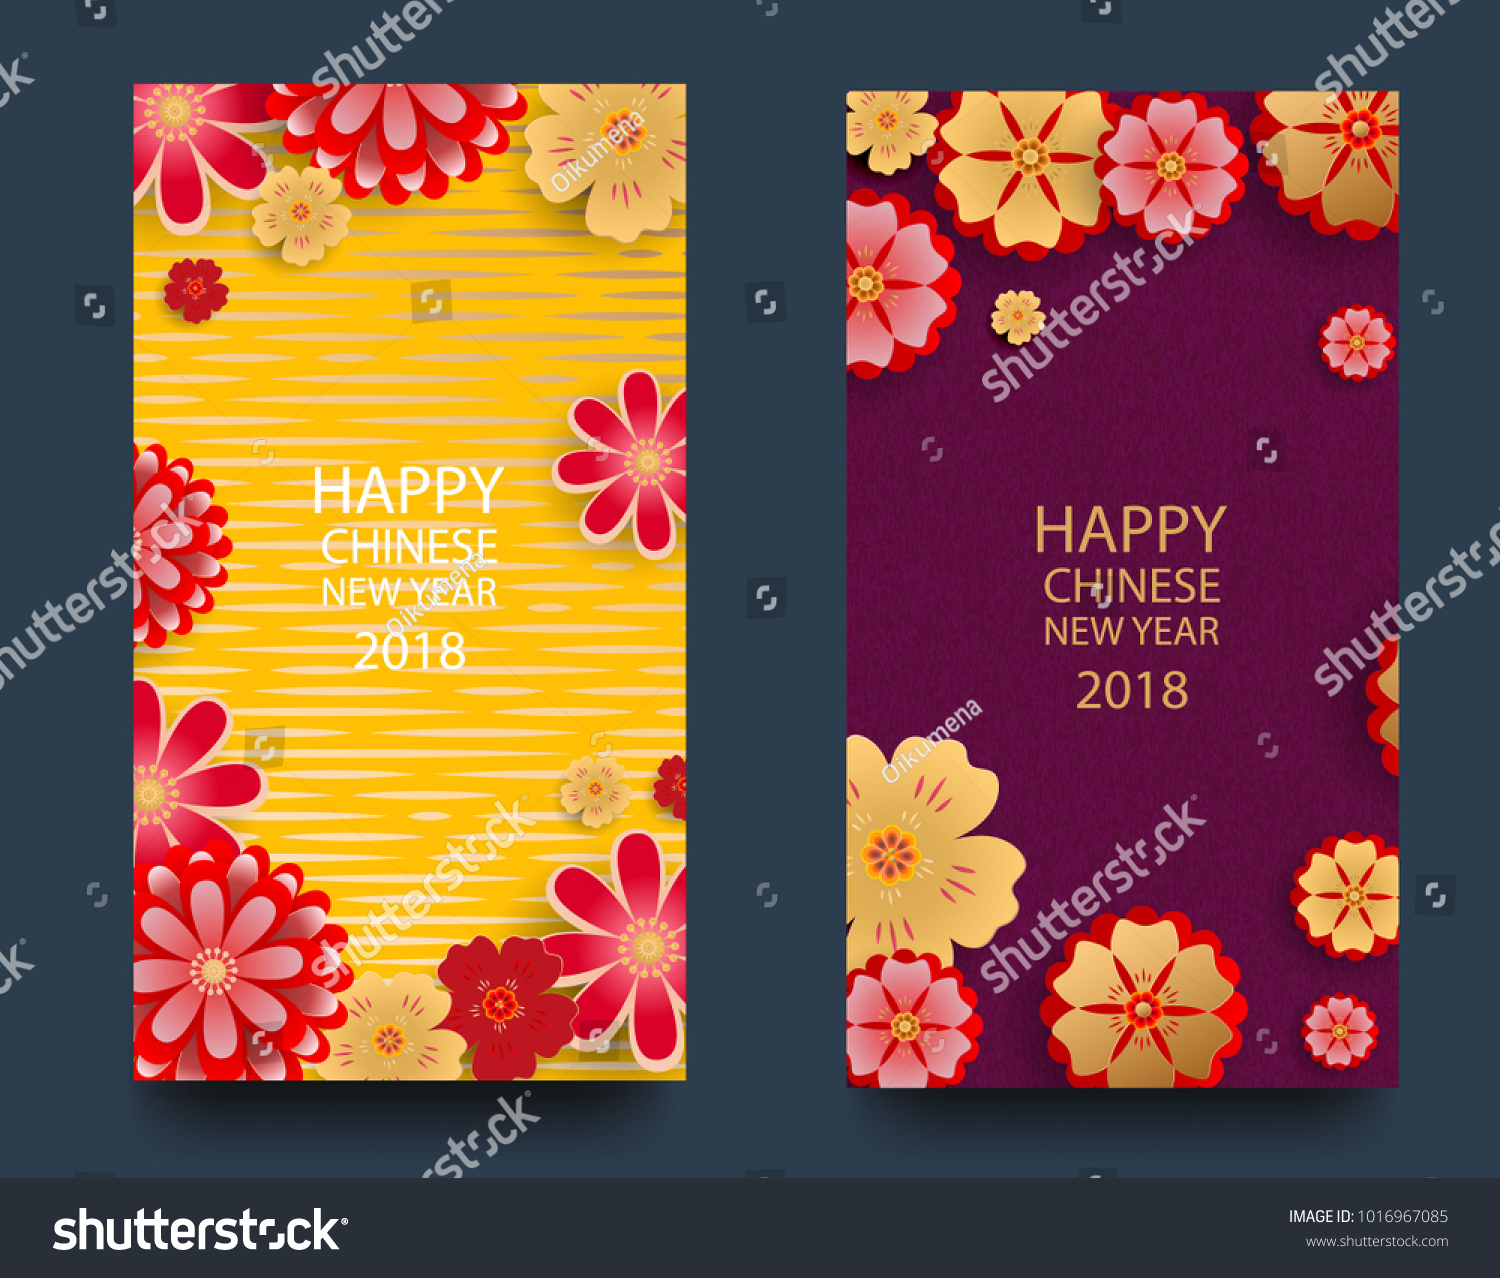 Happy New Year2018 Chinese New Year Greeting Card Two Sides Poster